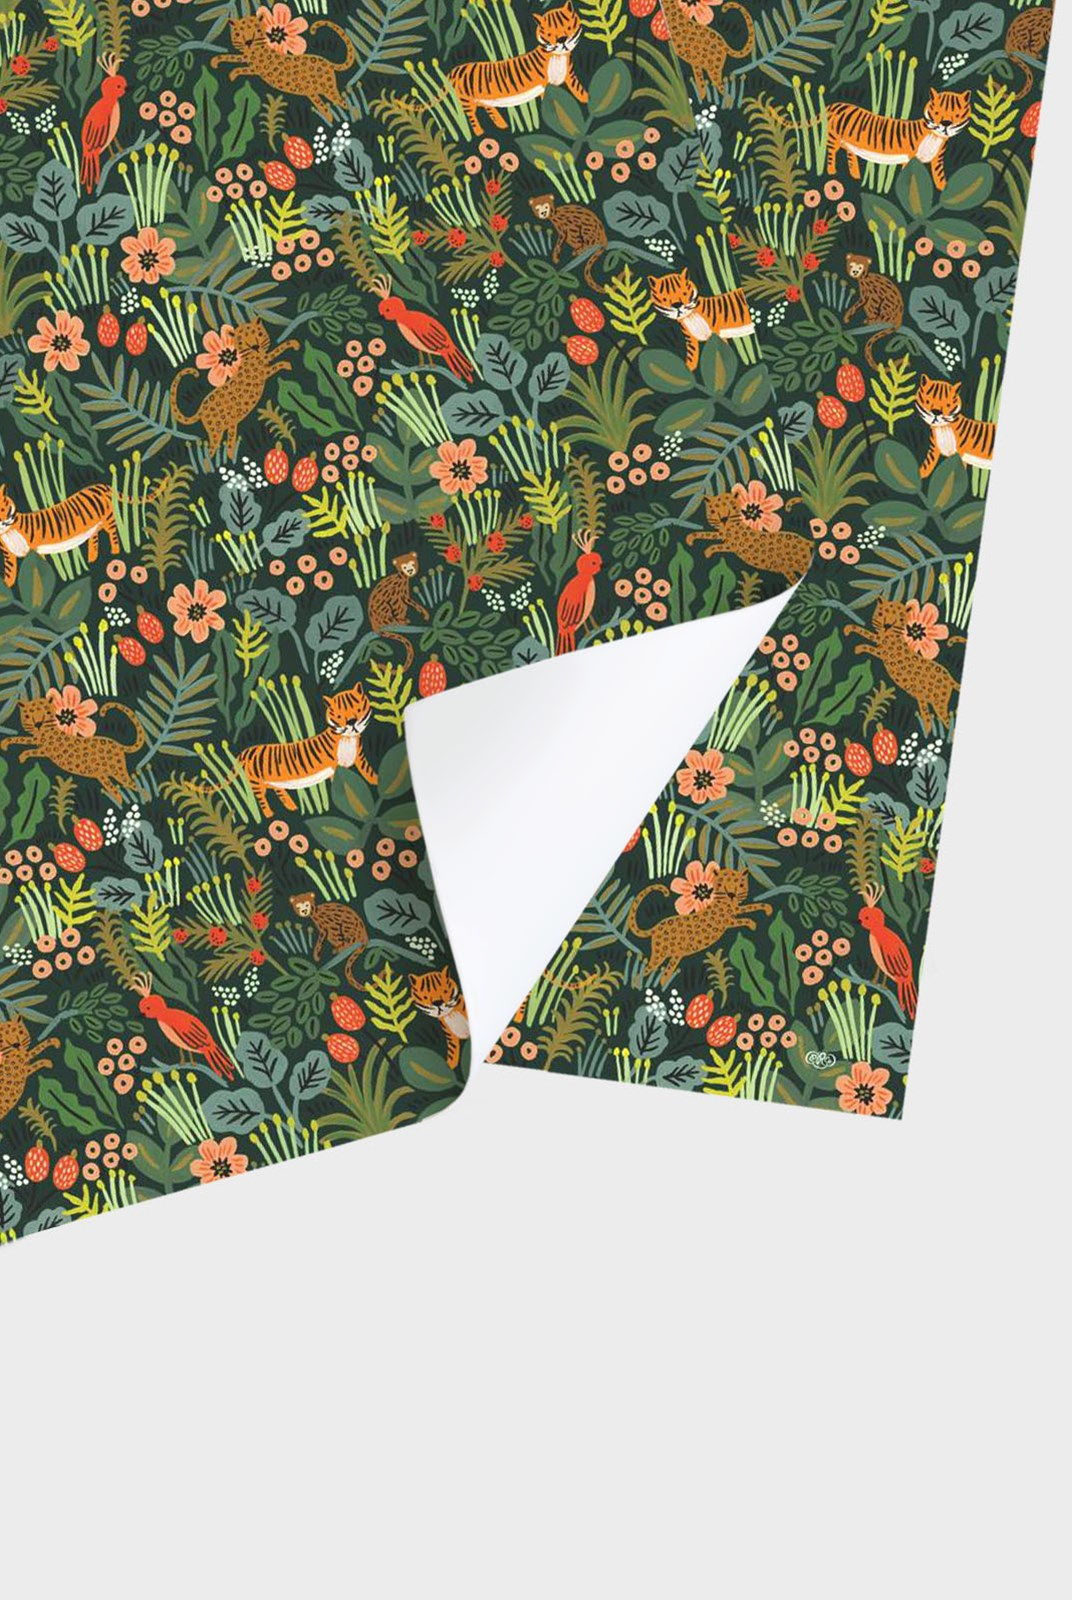 Rifle Paper Co - Single Wrapping Sheet - Jungle